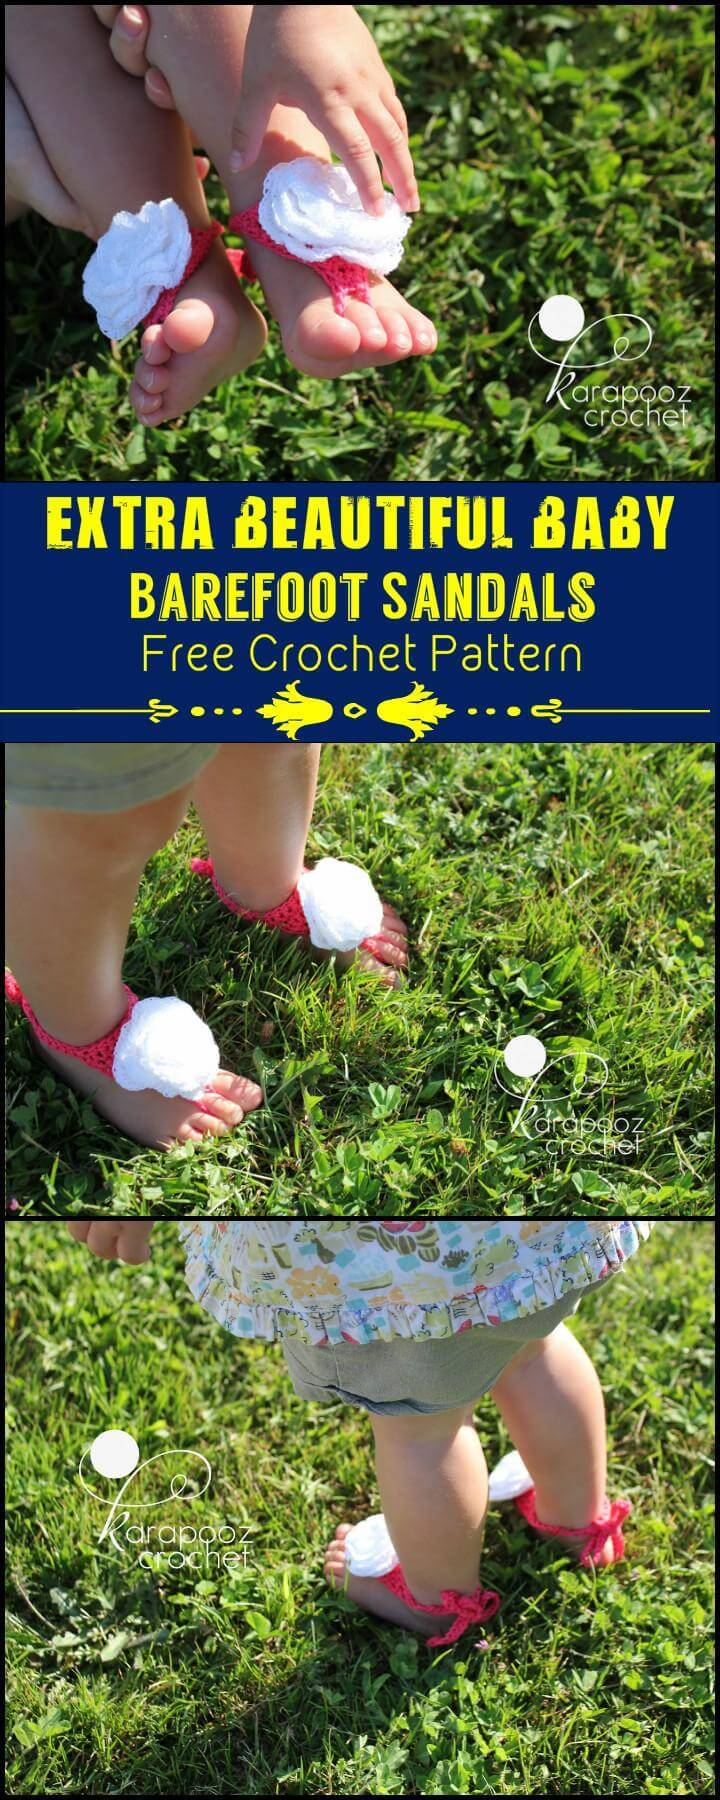 Extra Beautiful Baby Barefoot Sandals Free Crochet Pattern